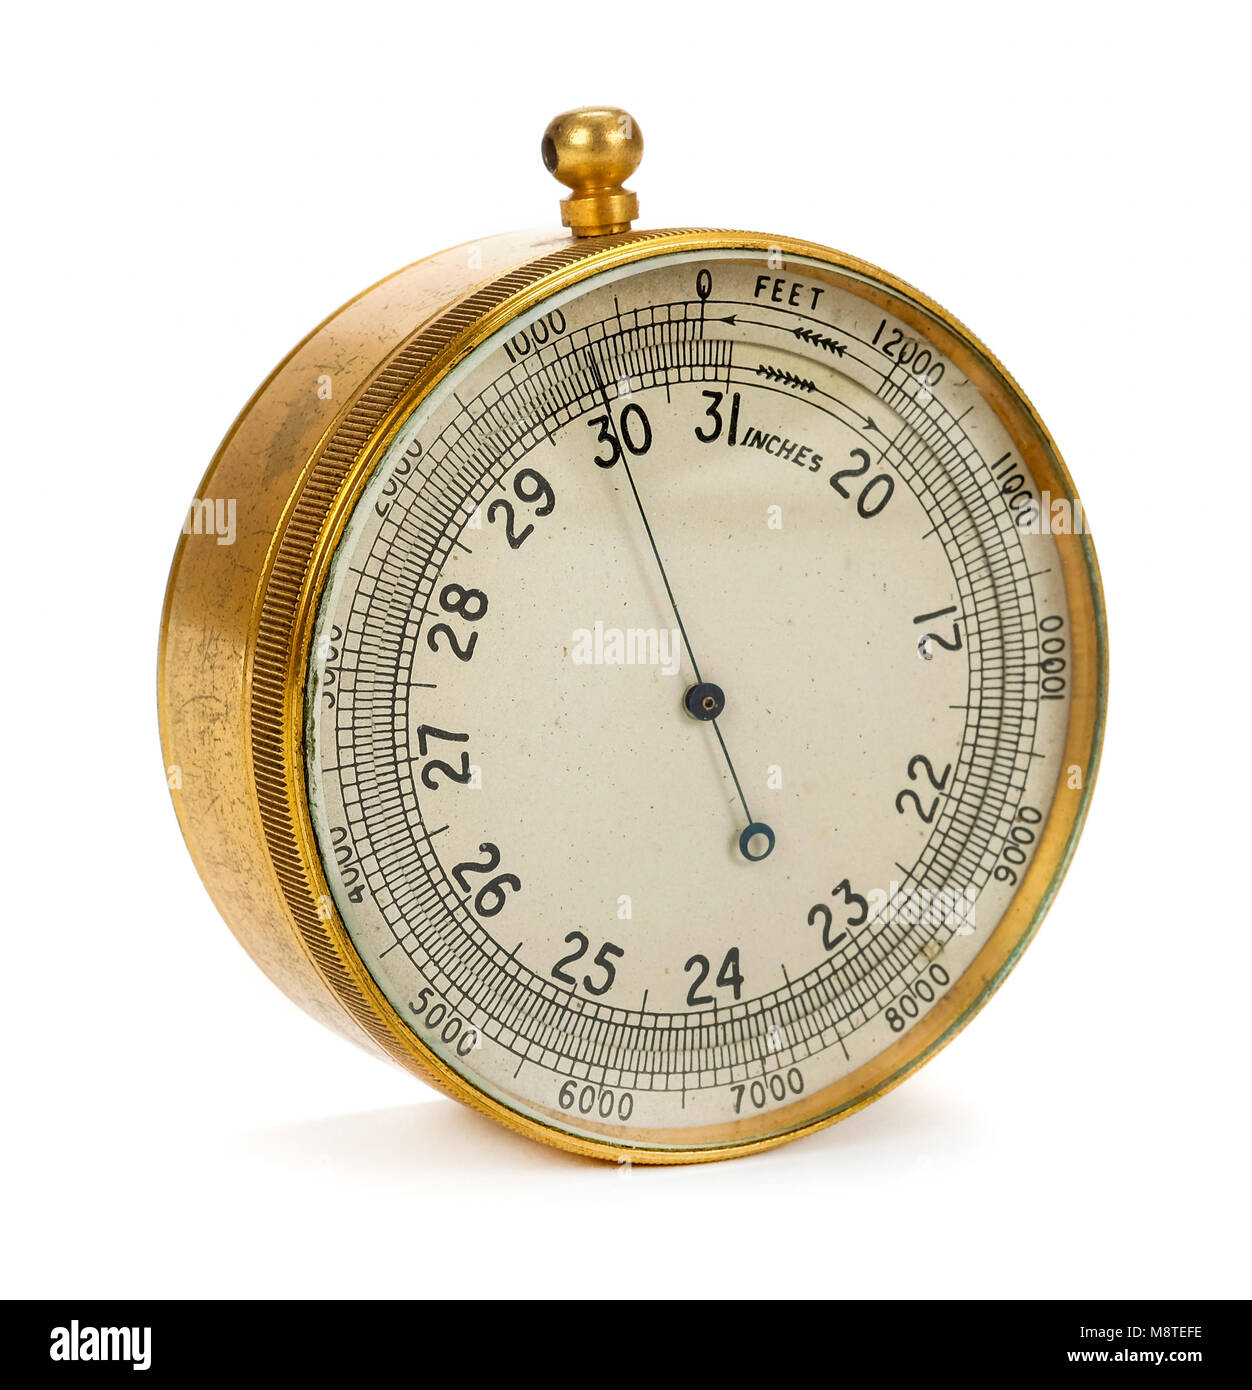 WW2 Battle of Britain period British Air Ministry pocket aneroid barometer made by T. Wheeler of London - Stock Image